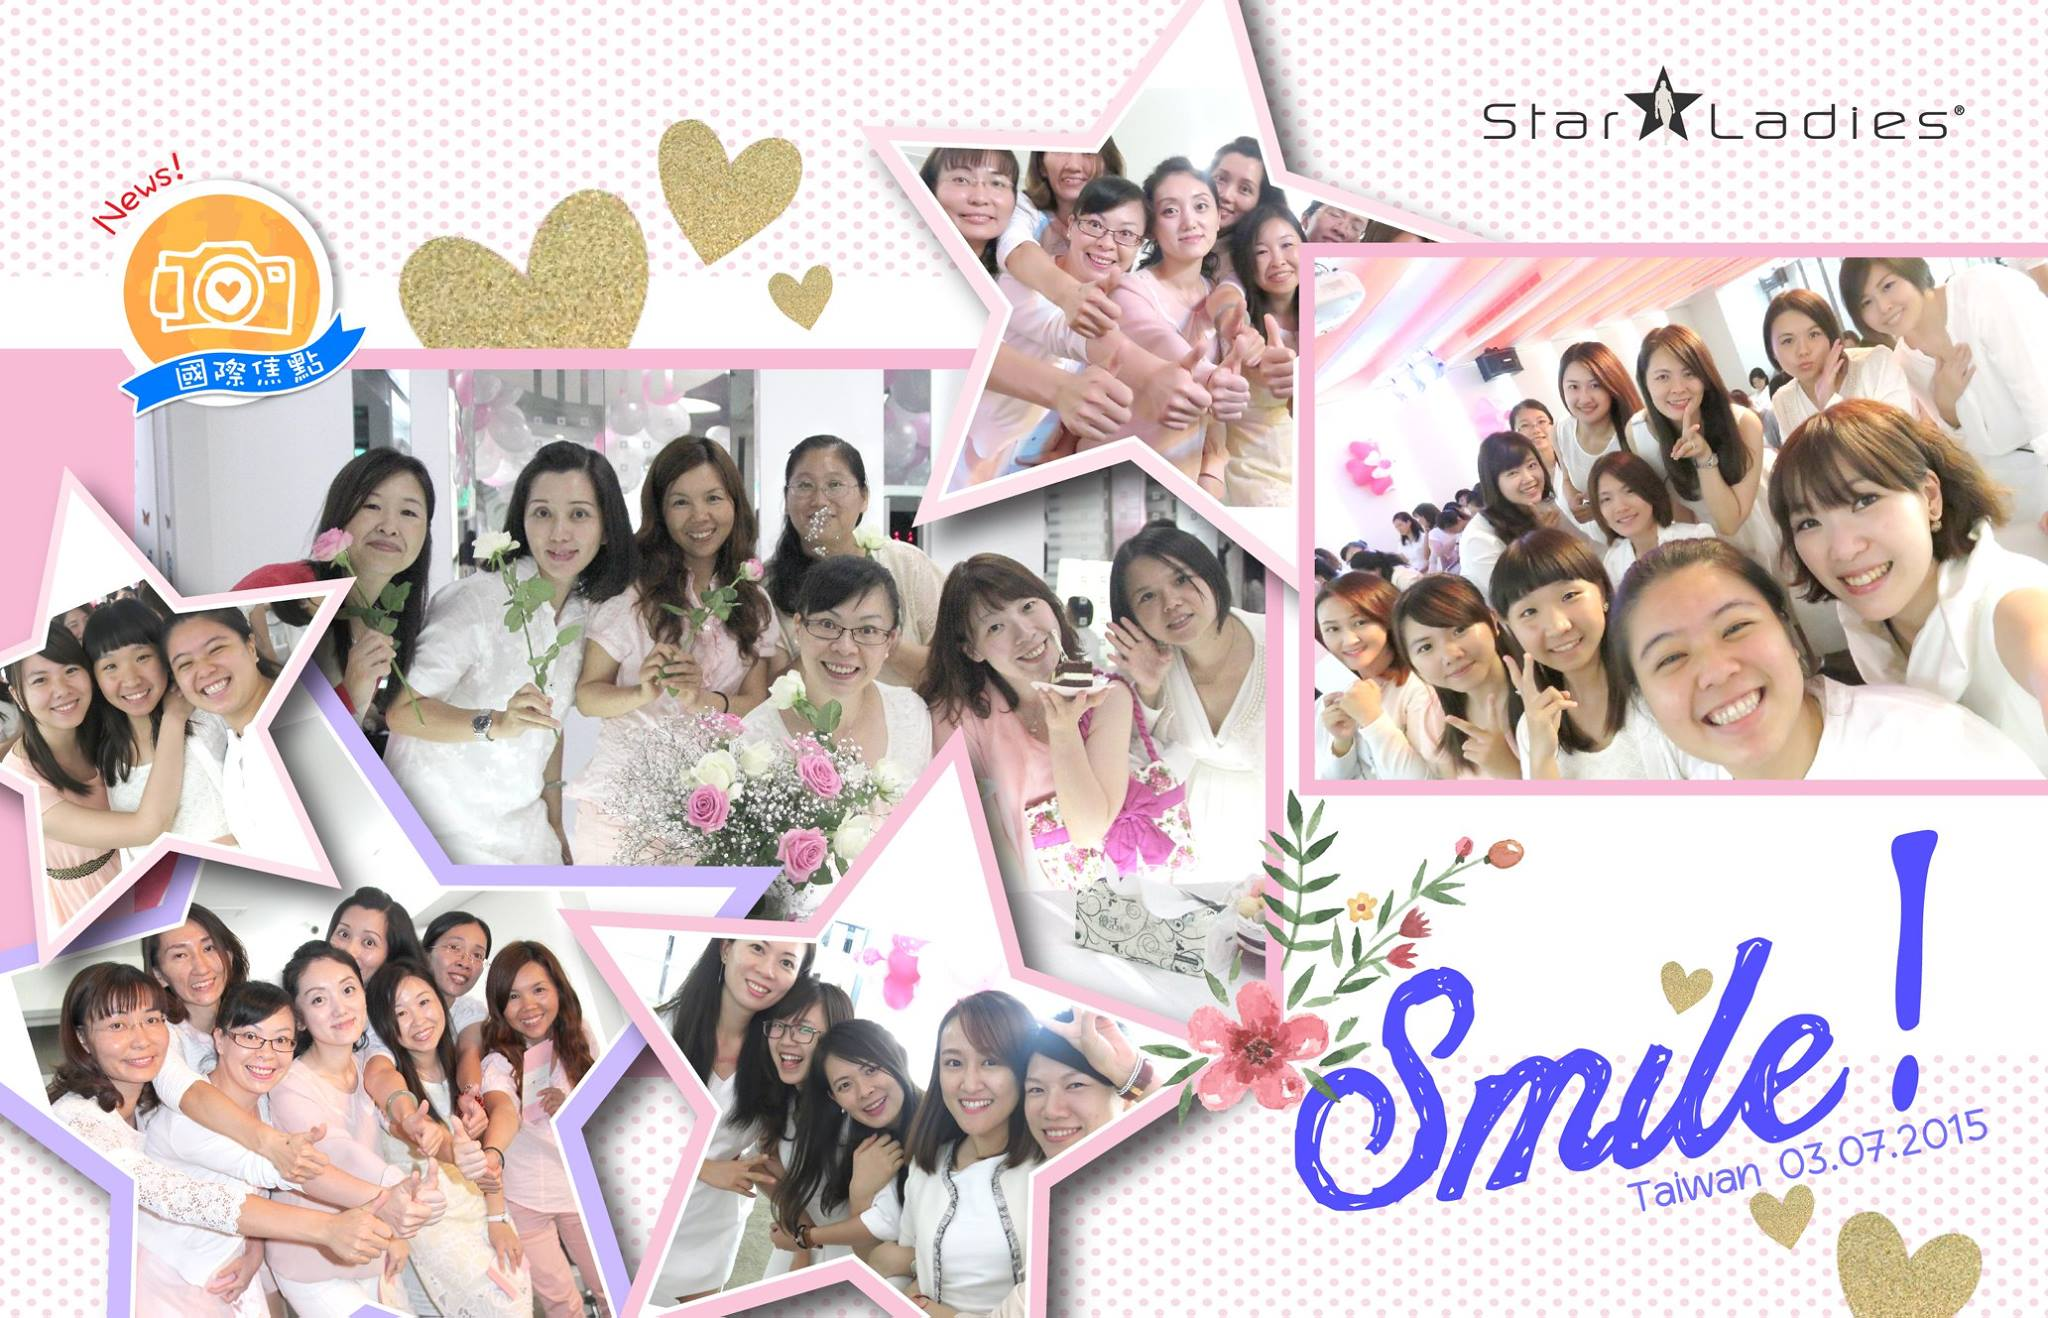 Some sharing from 3/7 Taiwan class, its about balancing your day with 8.8.8 principle~ Sisters in Malaysia, let's prepare our self and welcome the first class of StarLadies in Malaysia soon!